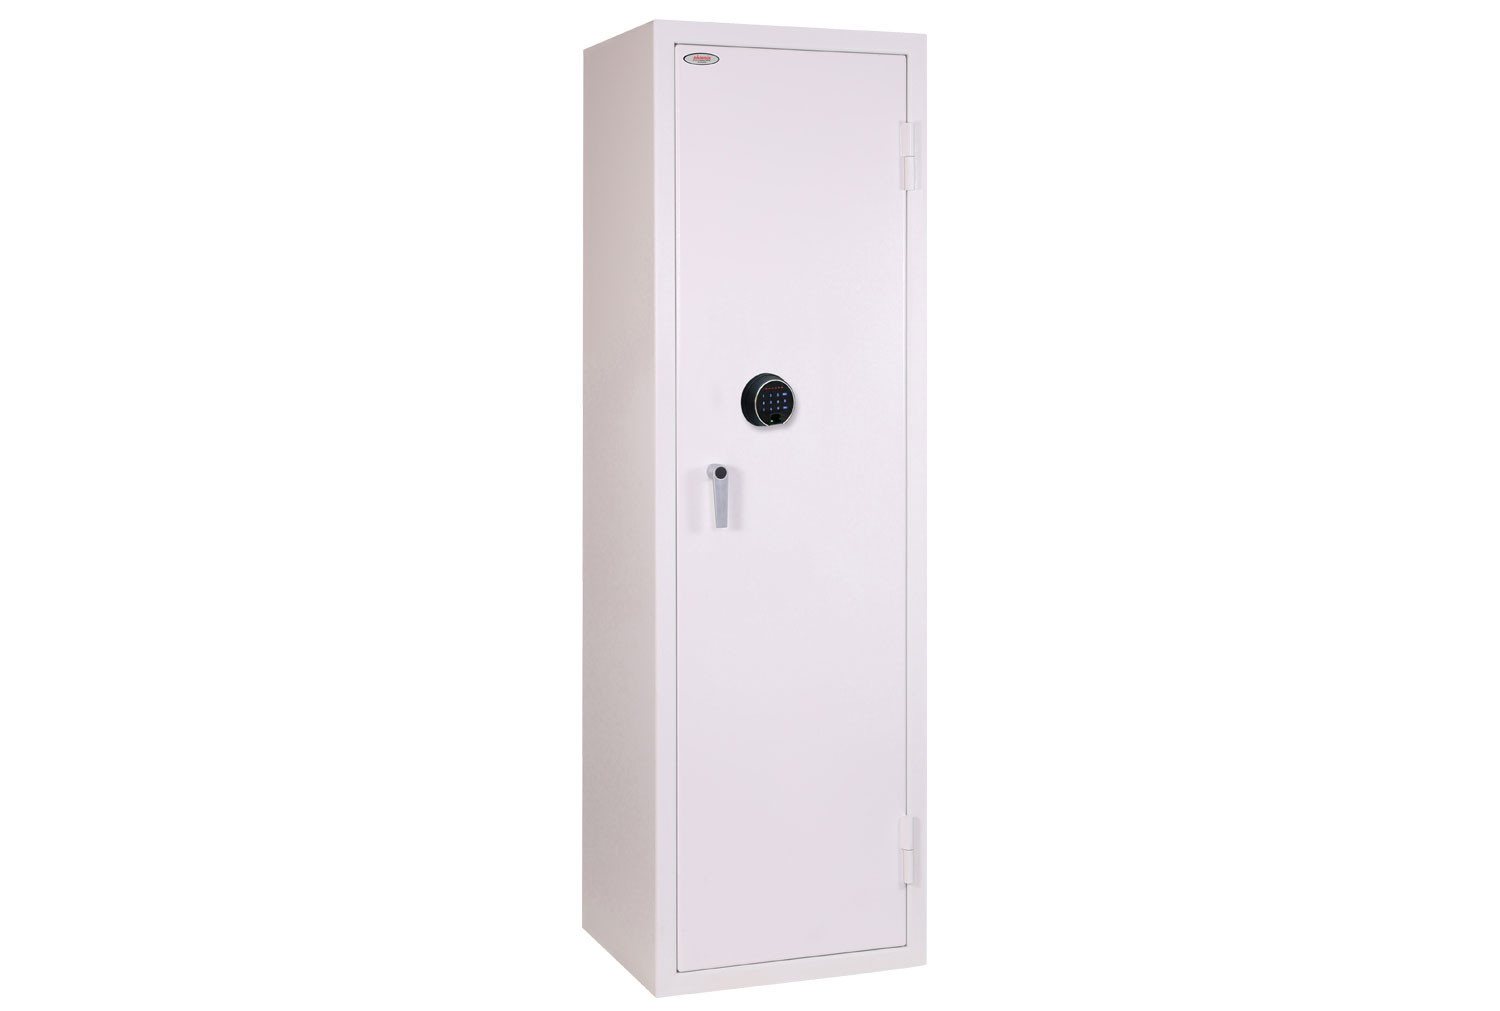 Phoenix Securstore SS1164F Security Safe With Fingerprint Lock (457ltrs)